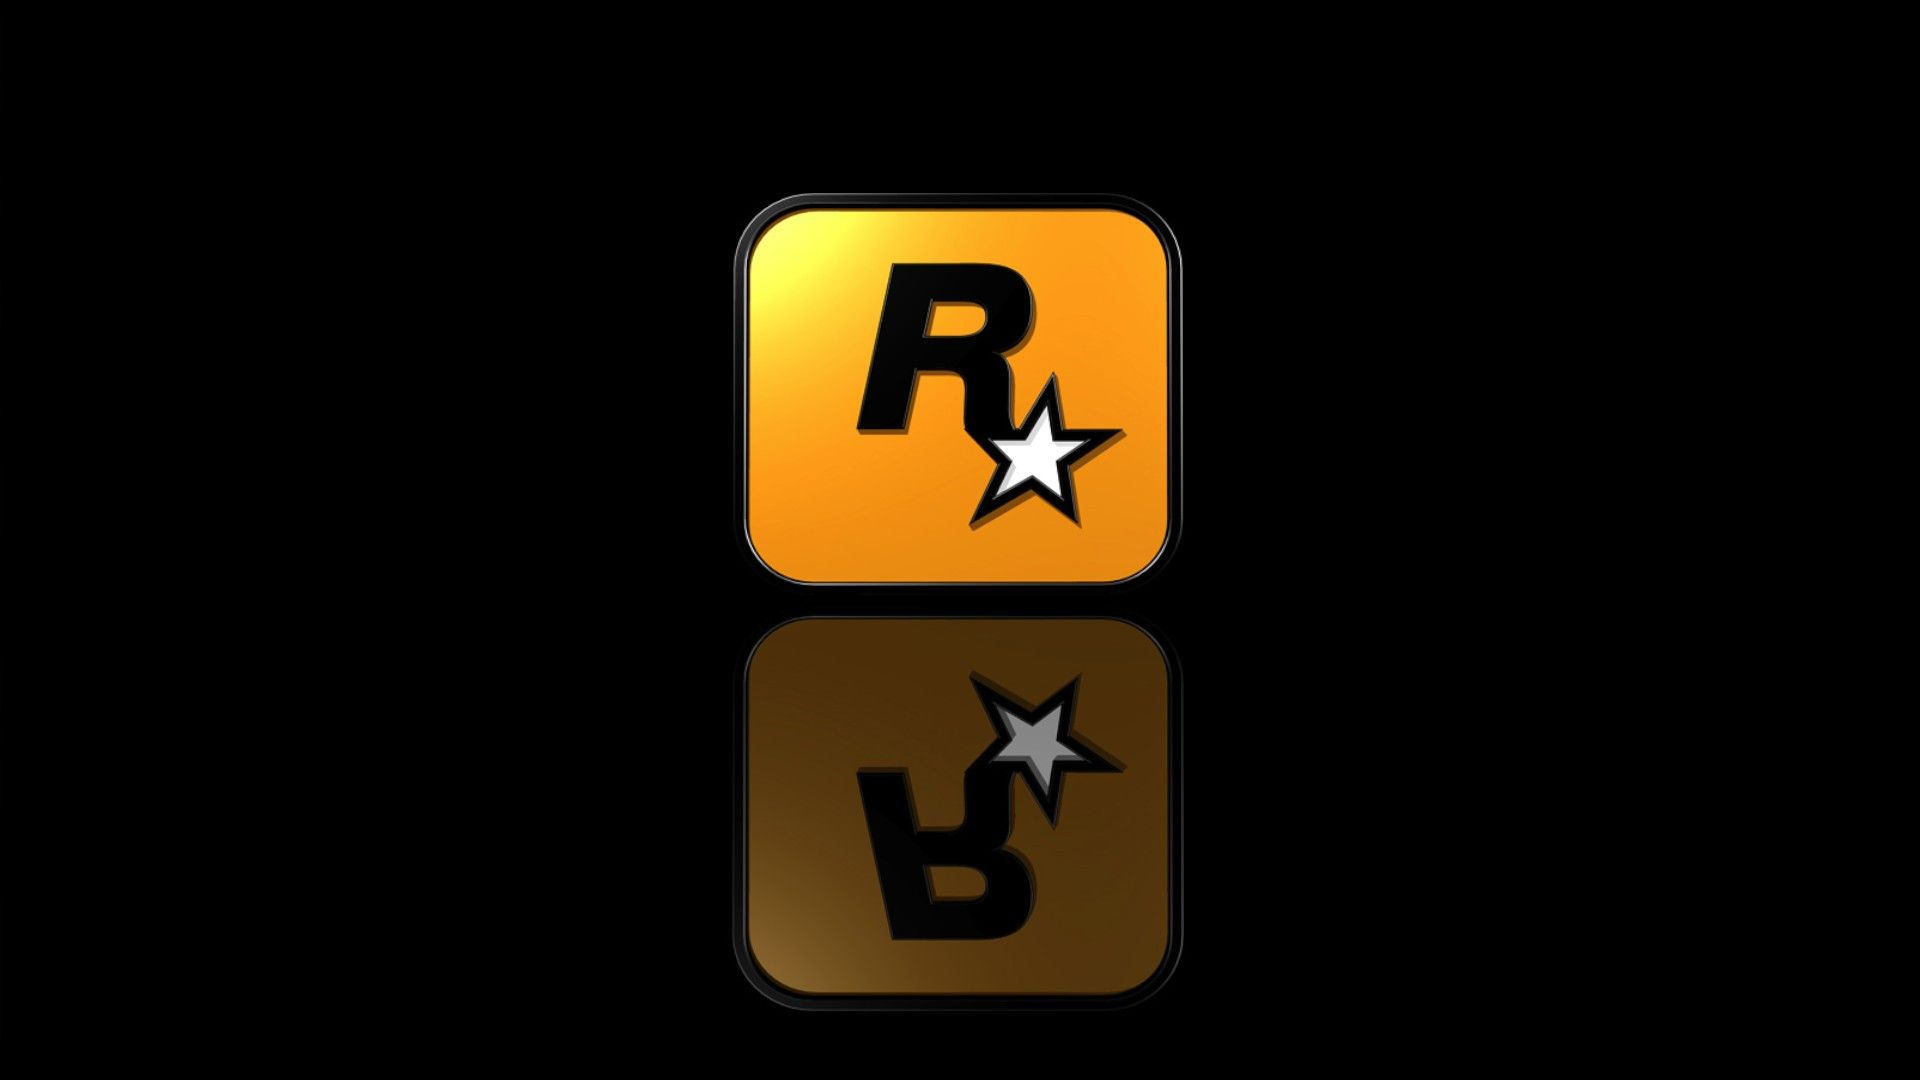 Rockstar Games Wallpaper HD